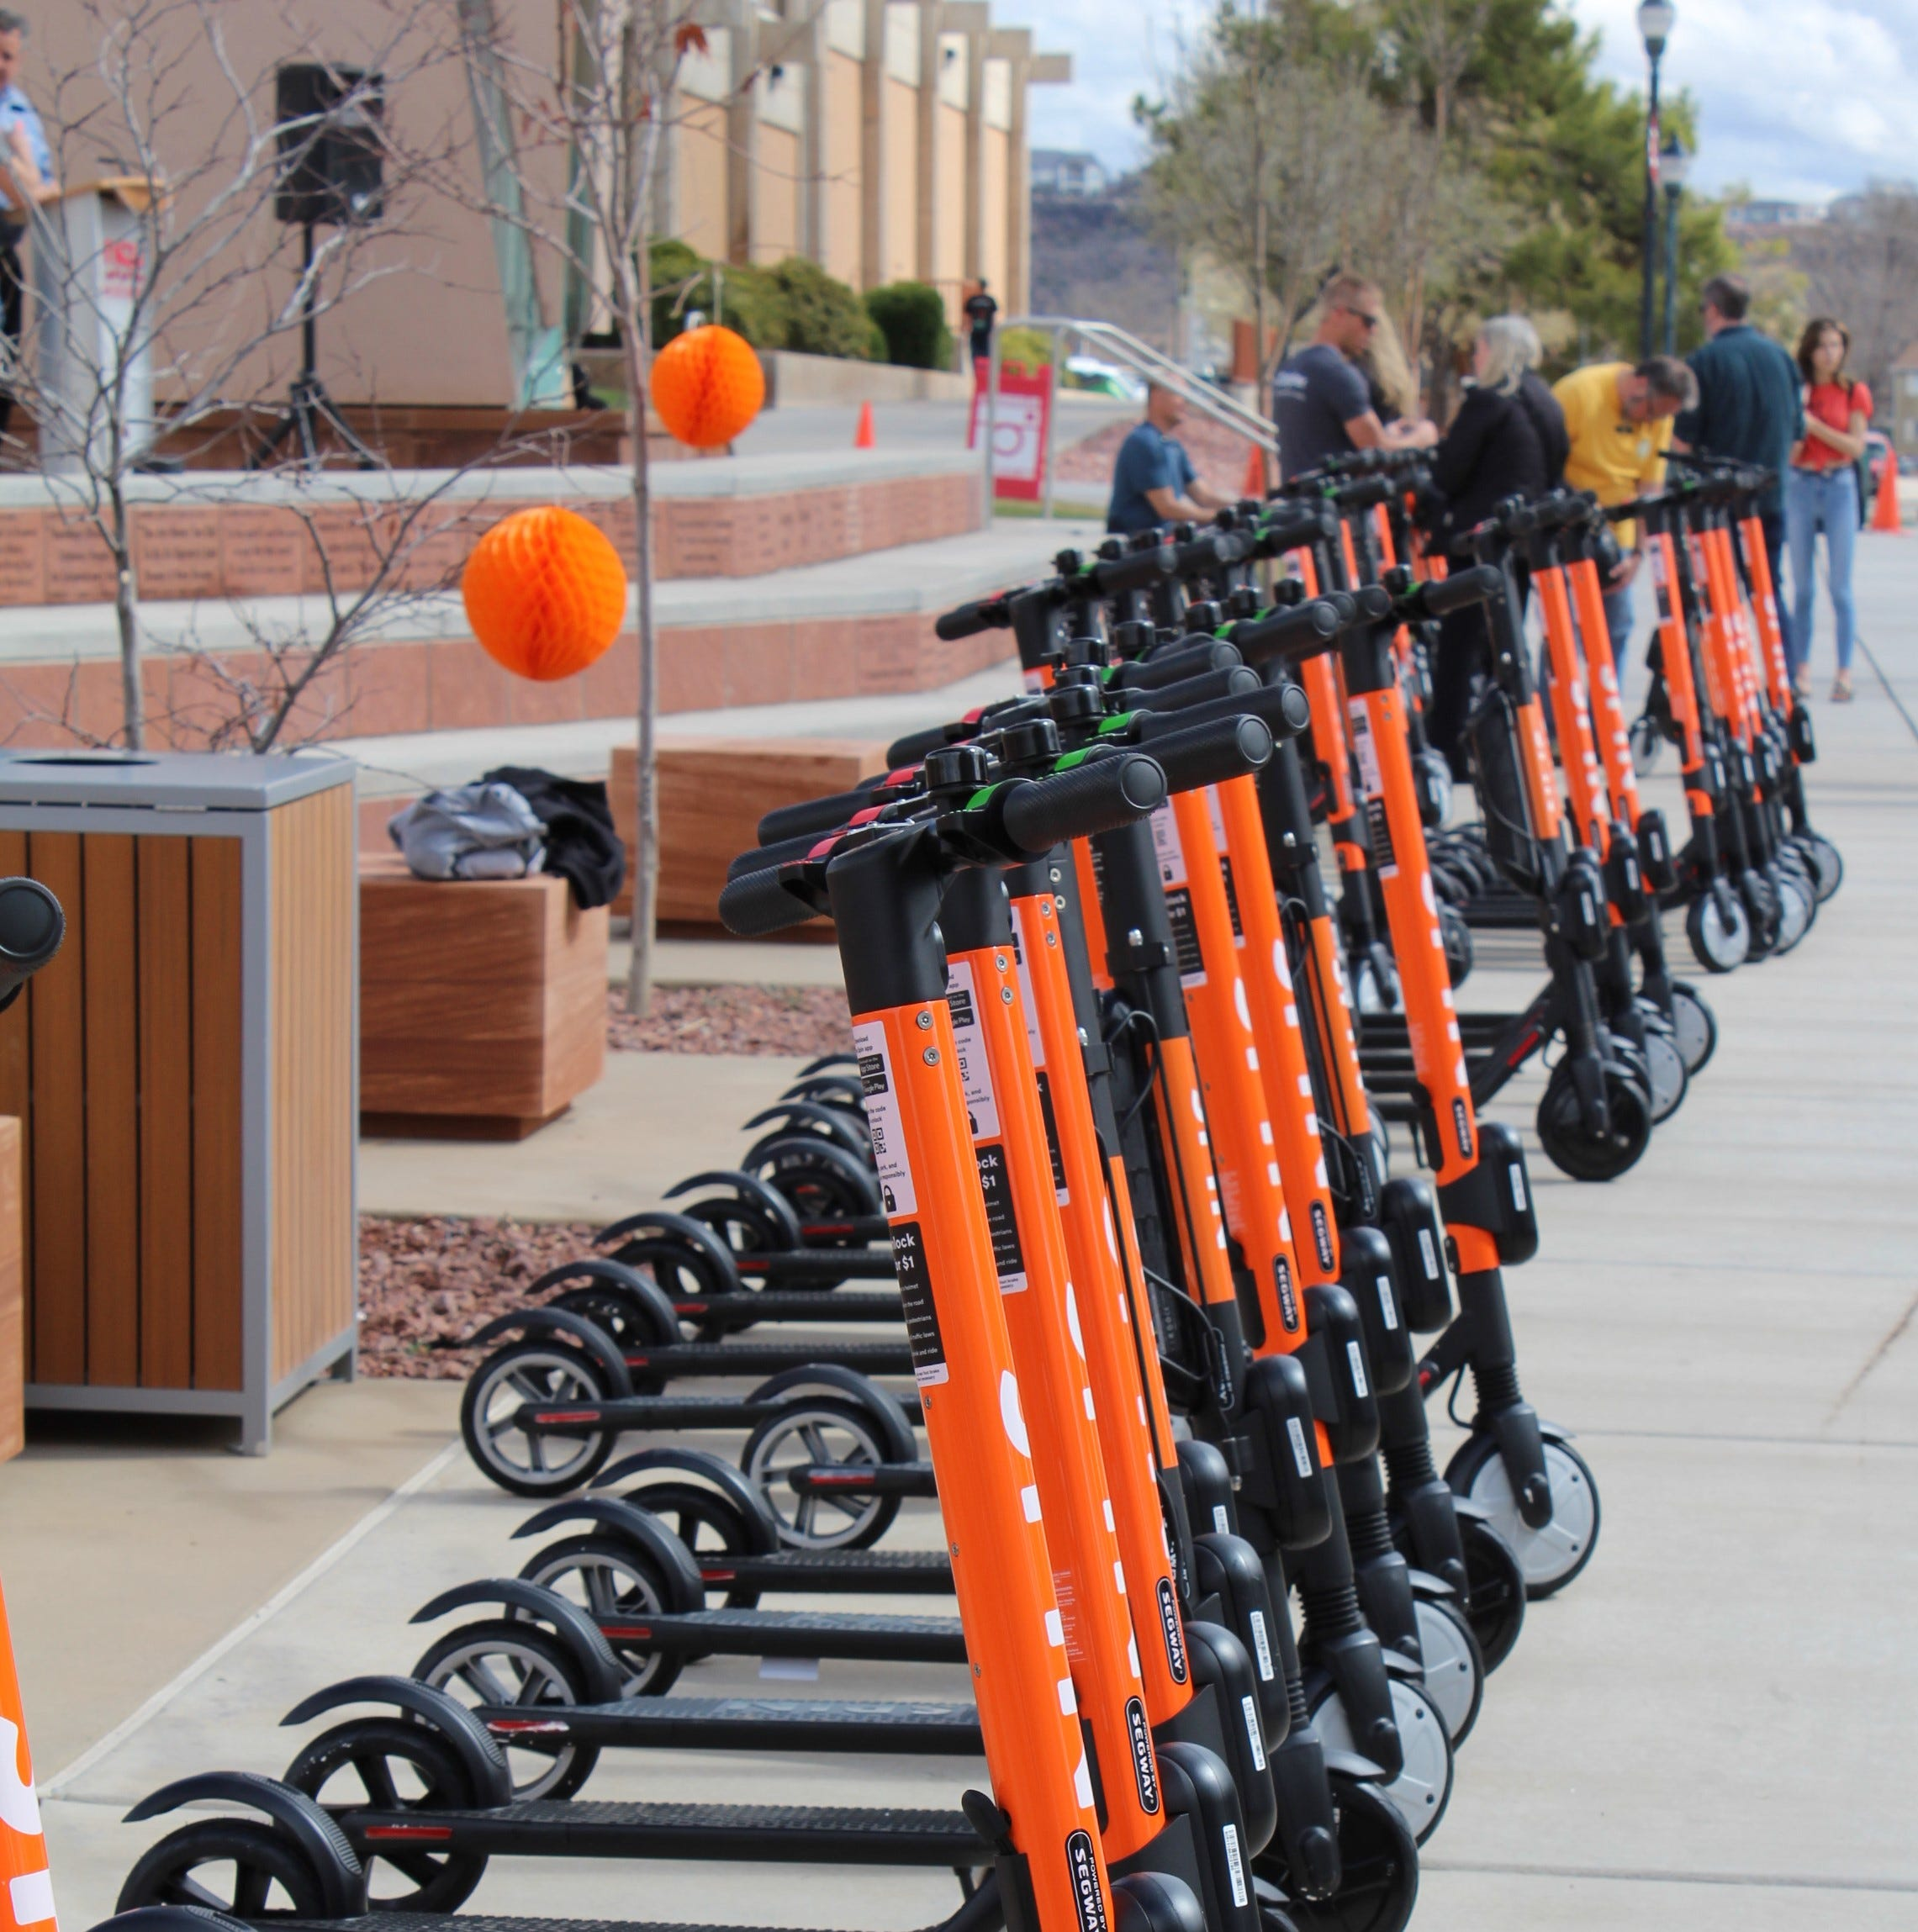 Spin unveils e-scooters to St. George with Dixie State campus ceremony